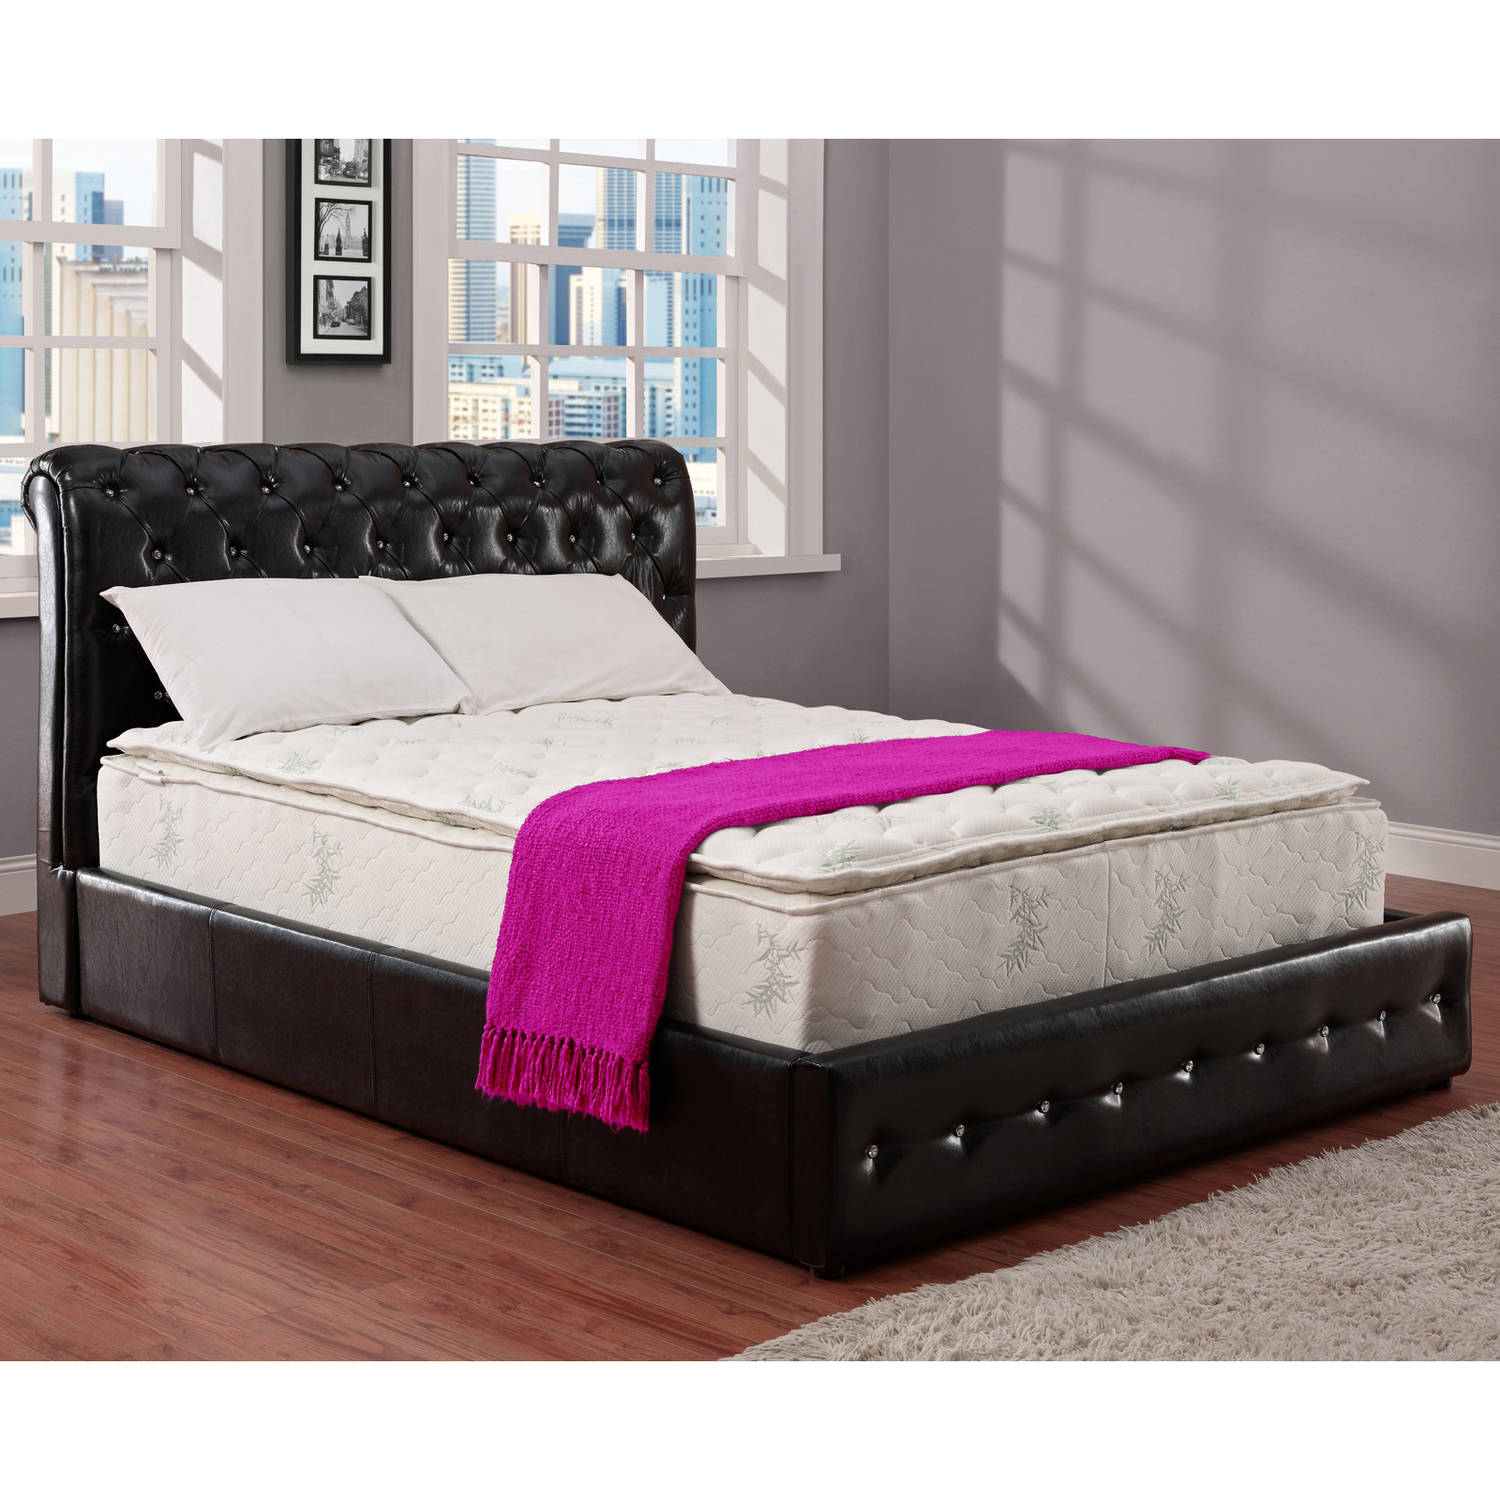 Ideal Full Size Pillow Top Mattress